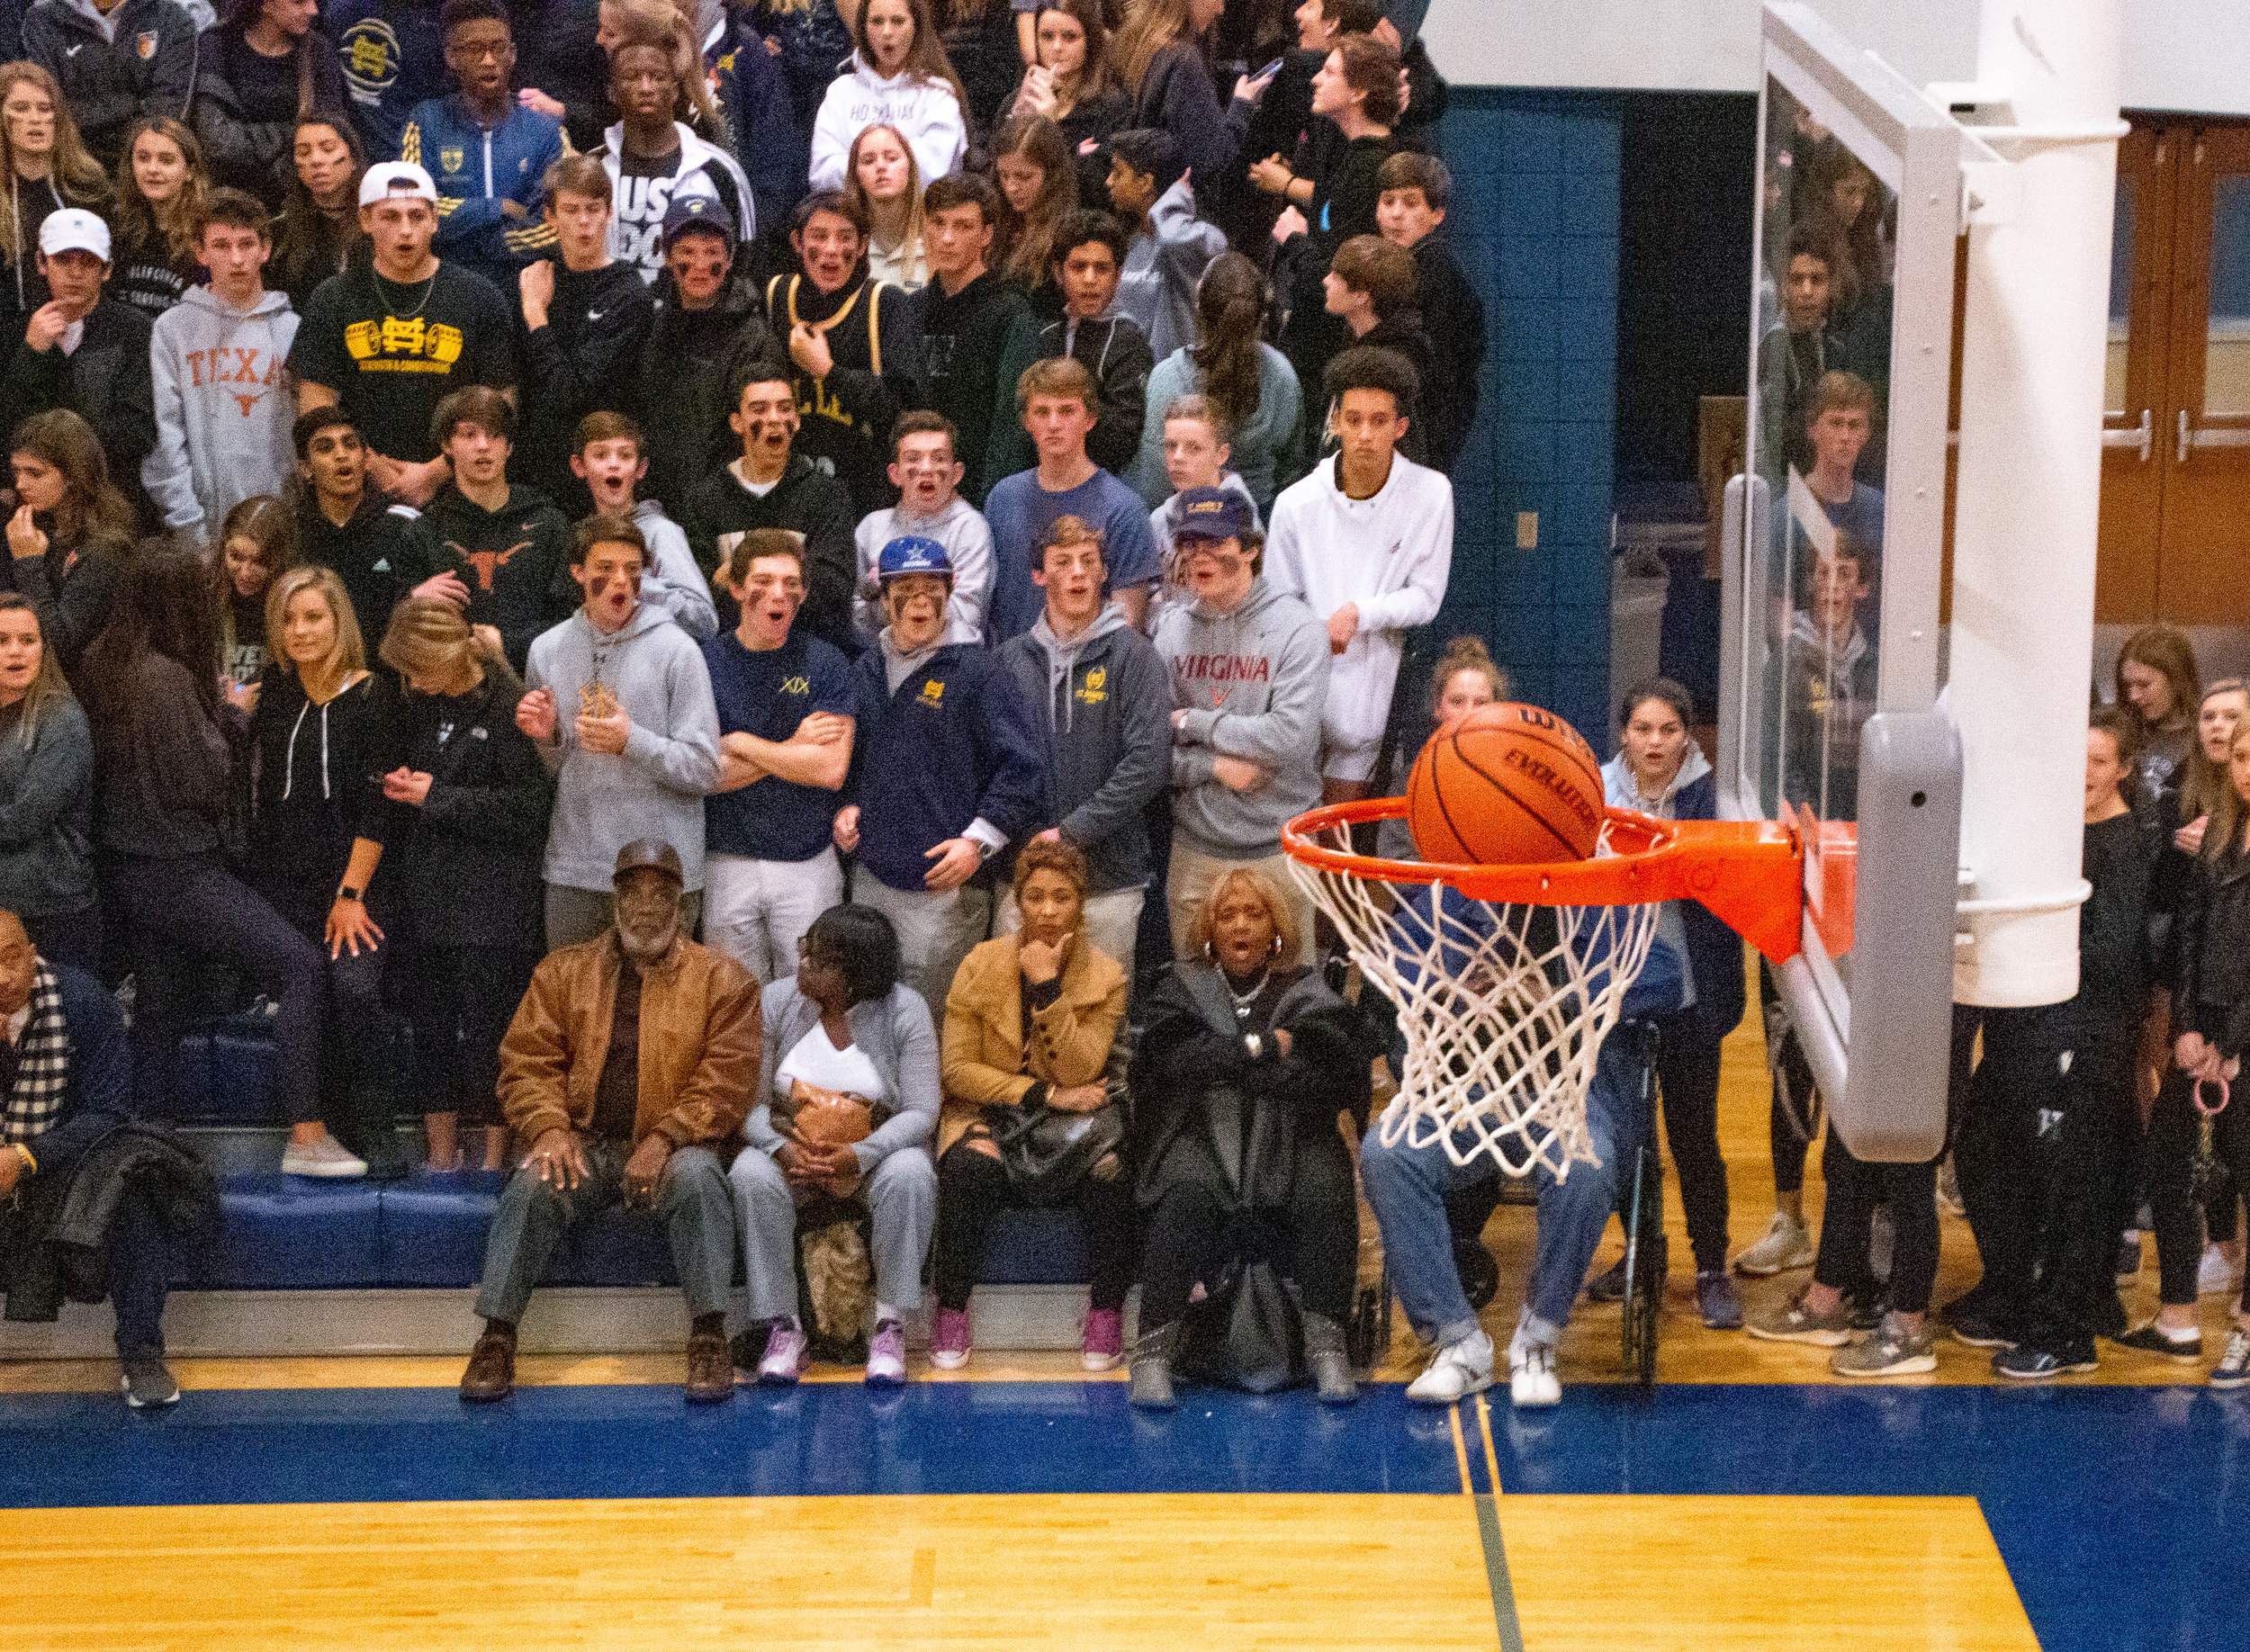 The crowd gasps as a layup by freshman Noah Shelby drops into the hoop. Shelby, beat two ESD defenders in the paint to get to the rim, was fouled on the play, allowing him to grab three points on the play.